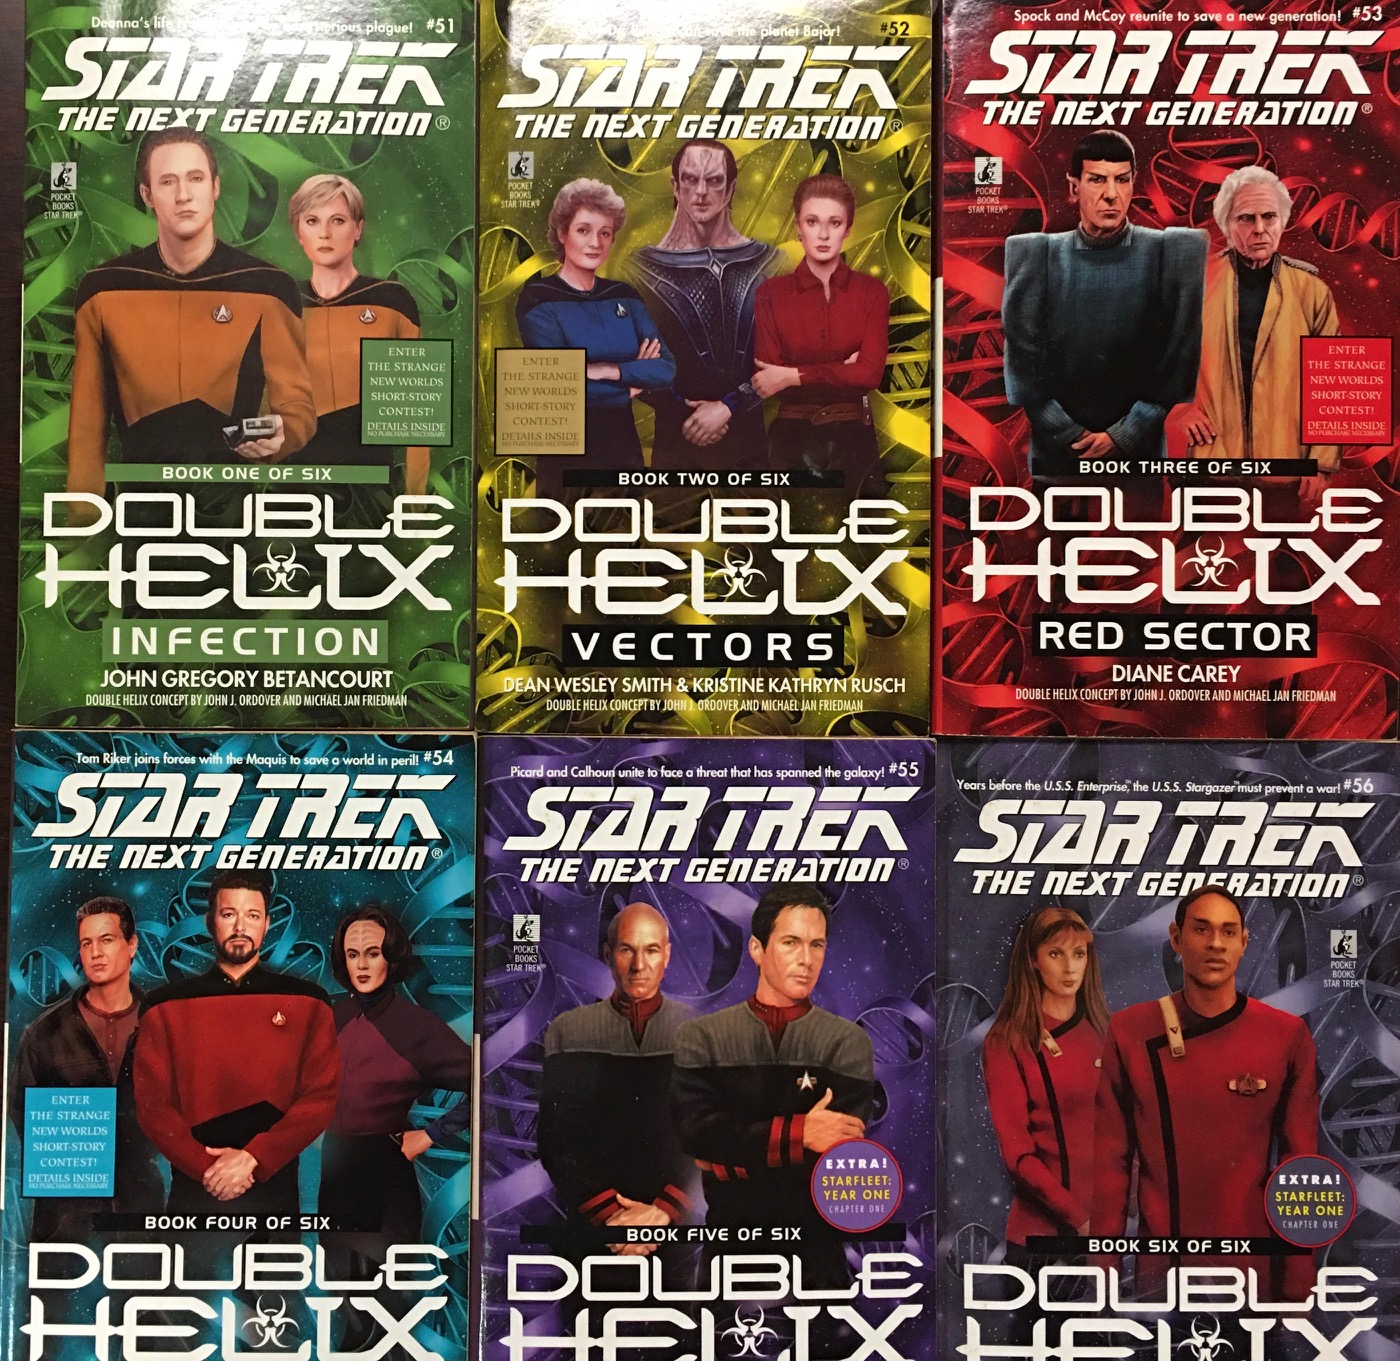 Image for Star Trek The Next Generation: Double Helix - 6 Book Set (Book 1: Infection; Book 2: Vectors; Book 3: Red Sector; Book 4: Quarantine; Book 5: Double or Nothing; Book 6: The First Virtue)